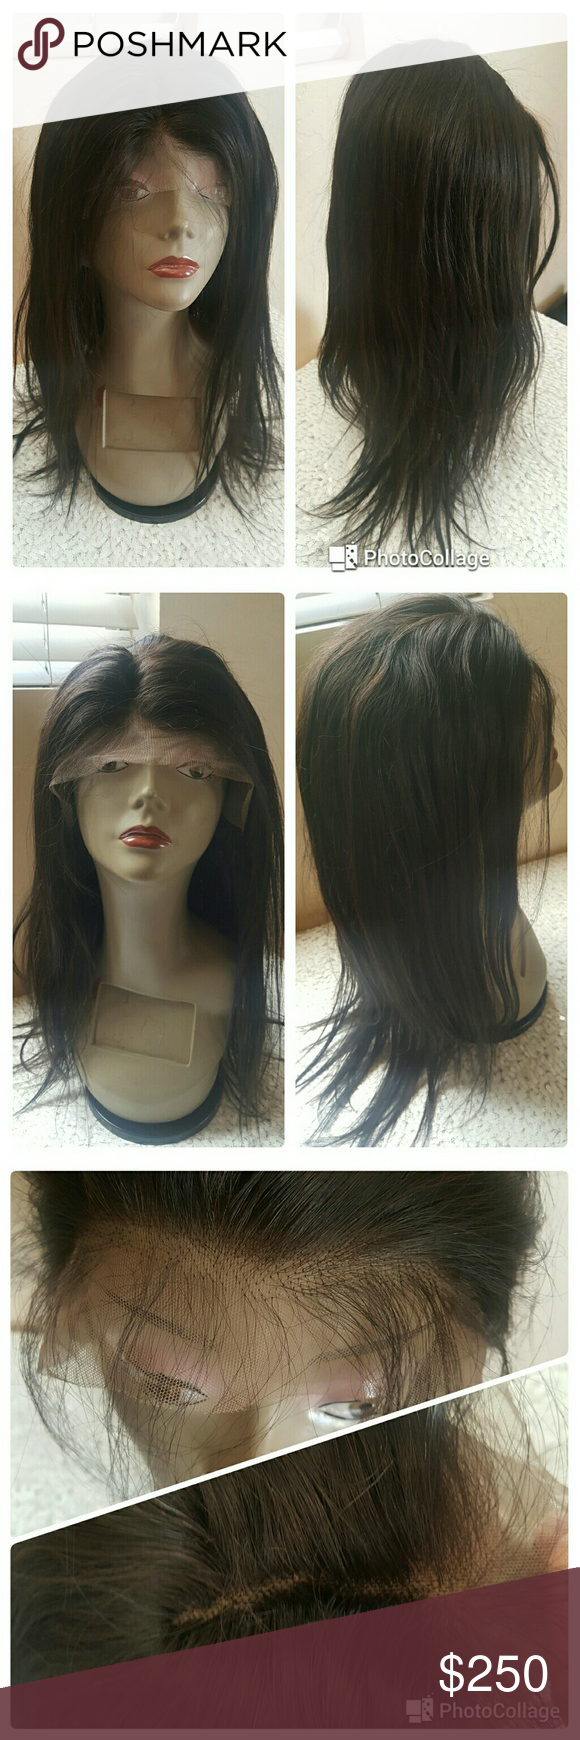 Sale european remy human hair lace front wig priced at on